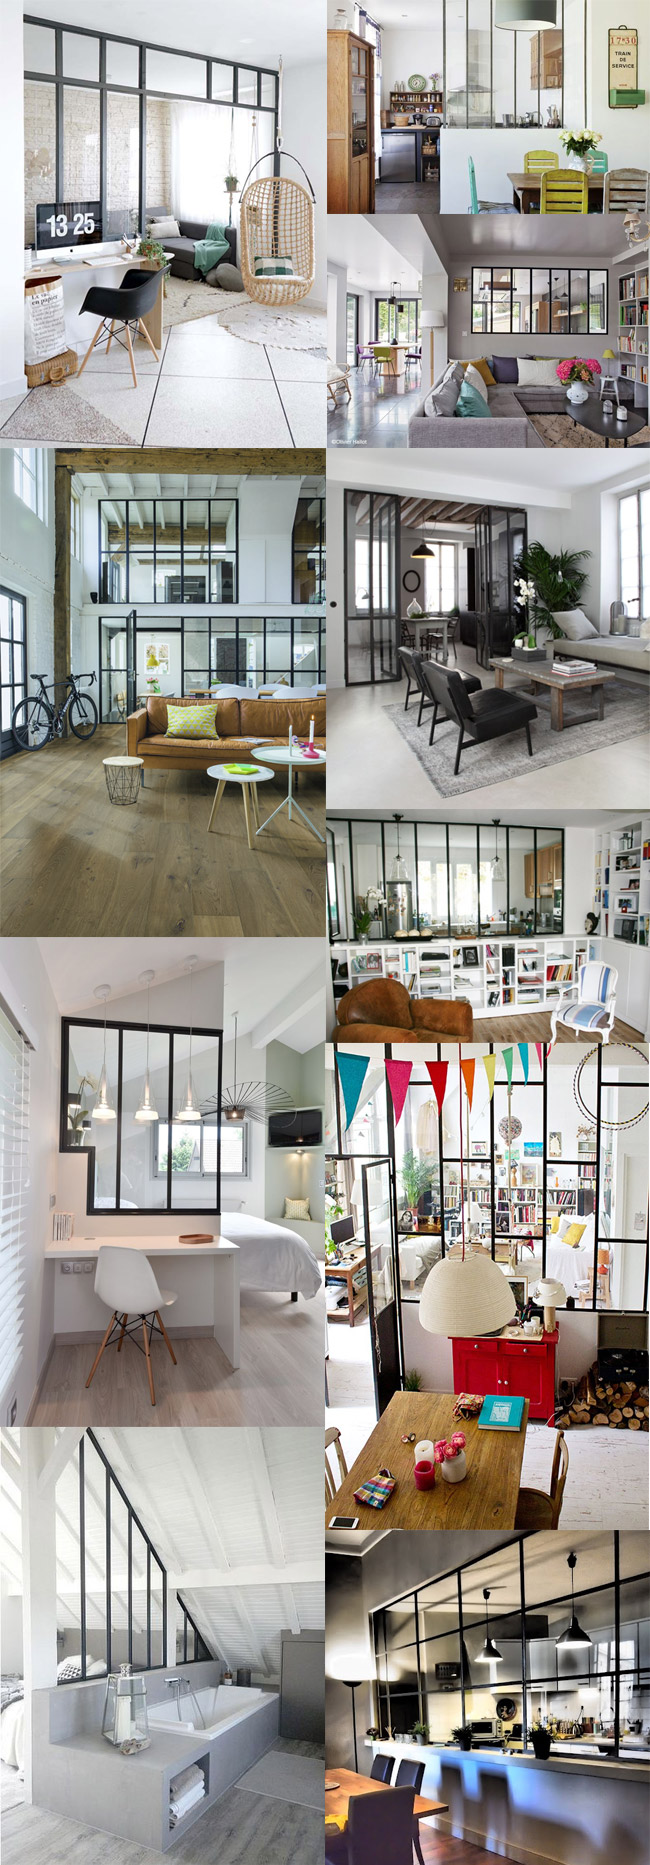 Id e d co verri re d 39 int rieur blog d co made in meubles - Verrieres interieur ...